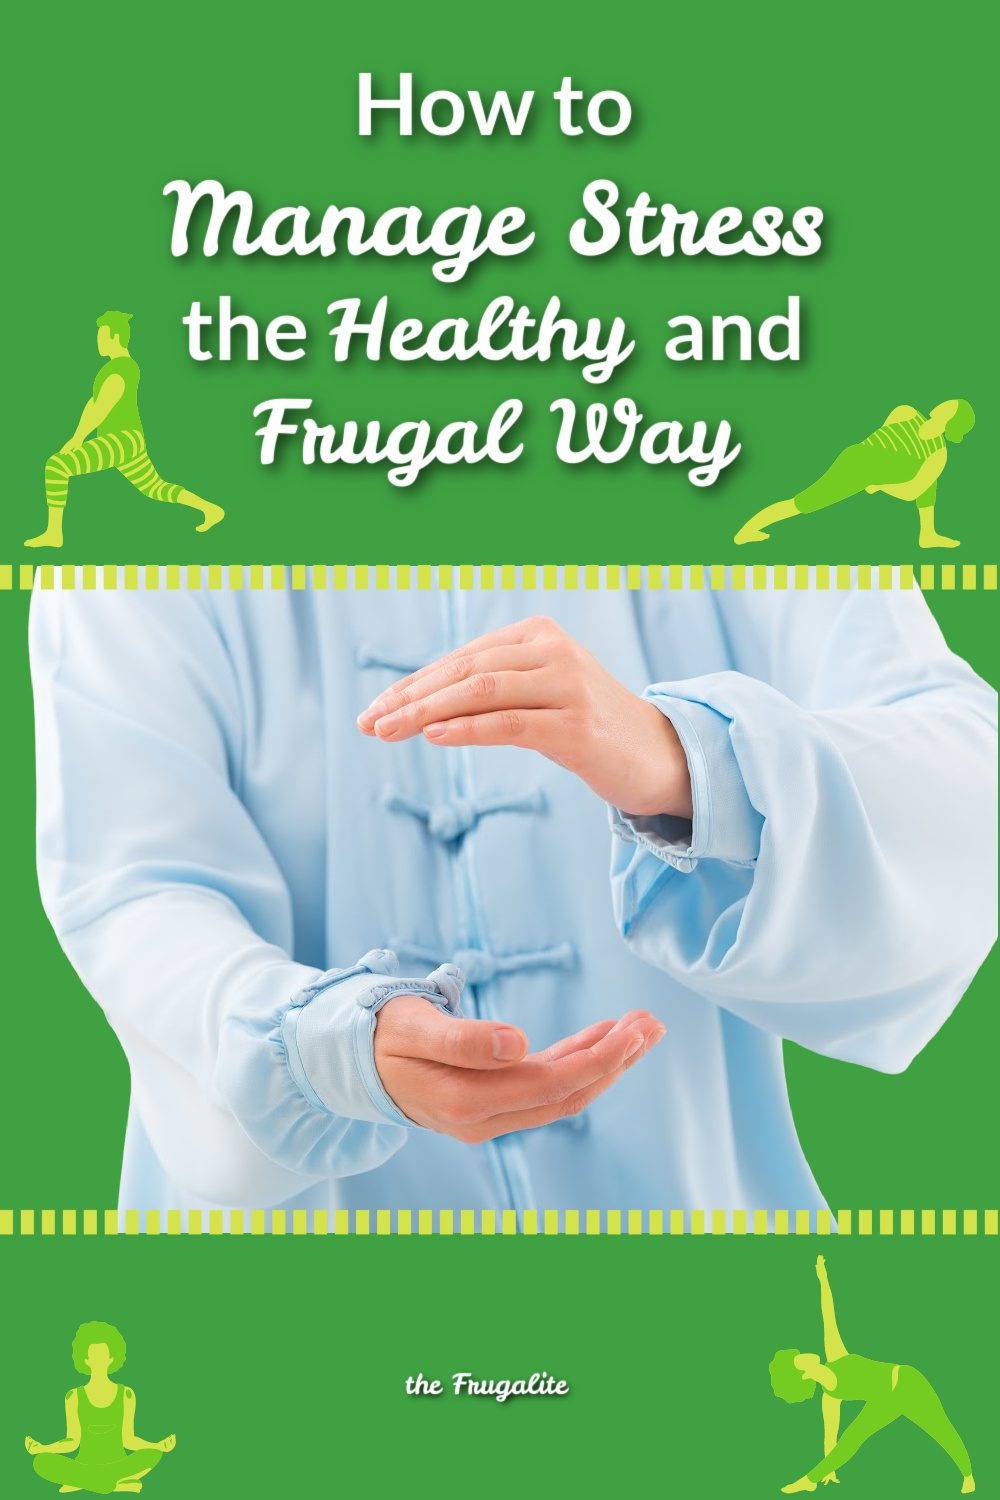 How to Manage Stress the Healthy and Frugal Way